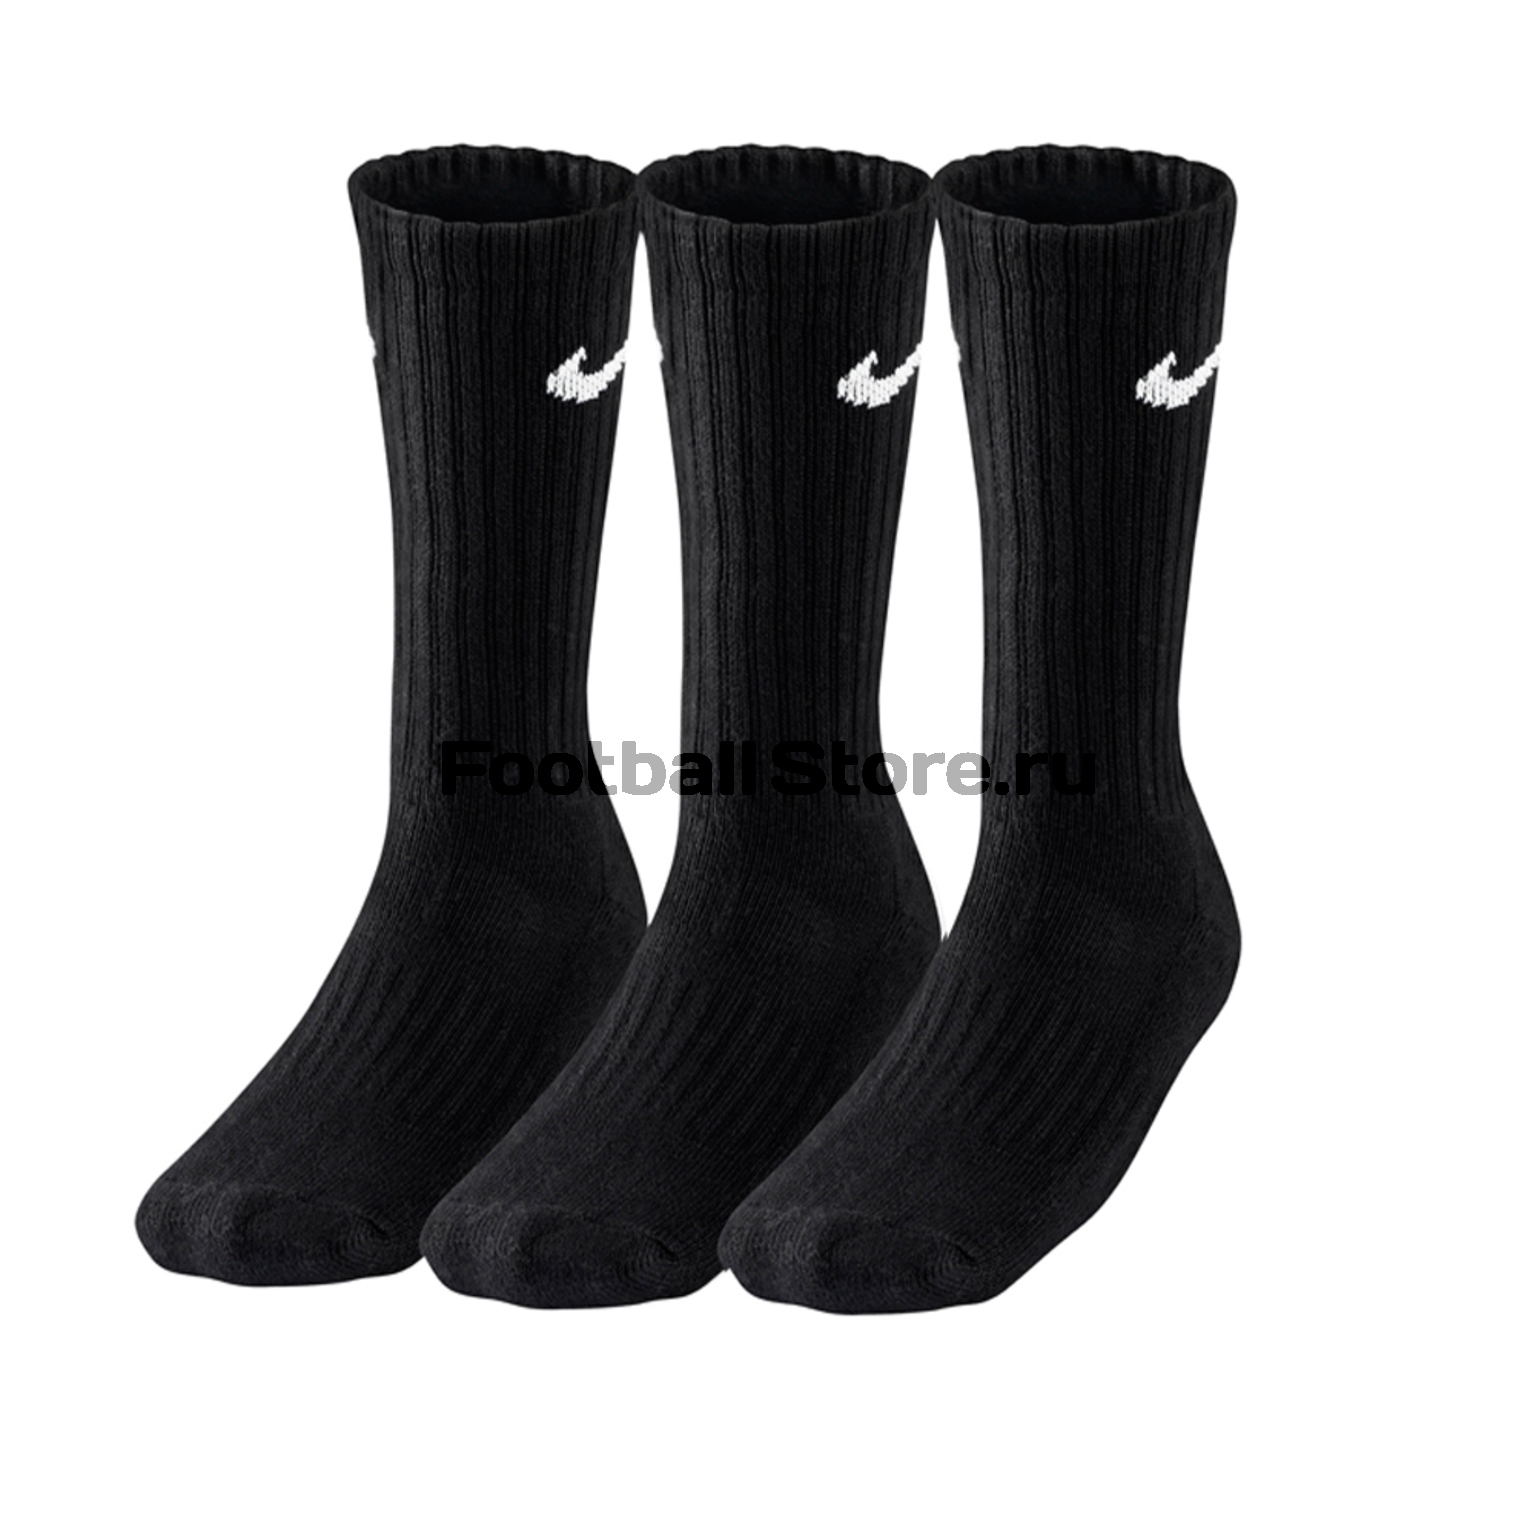 Комплект носков Nike 3ppk Value Cotton Crew SX4508-001 комплект носков nike 3ppk lightweight show sx4705 901